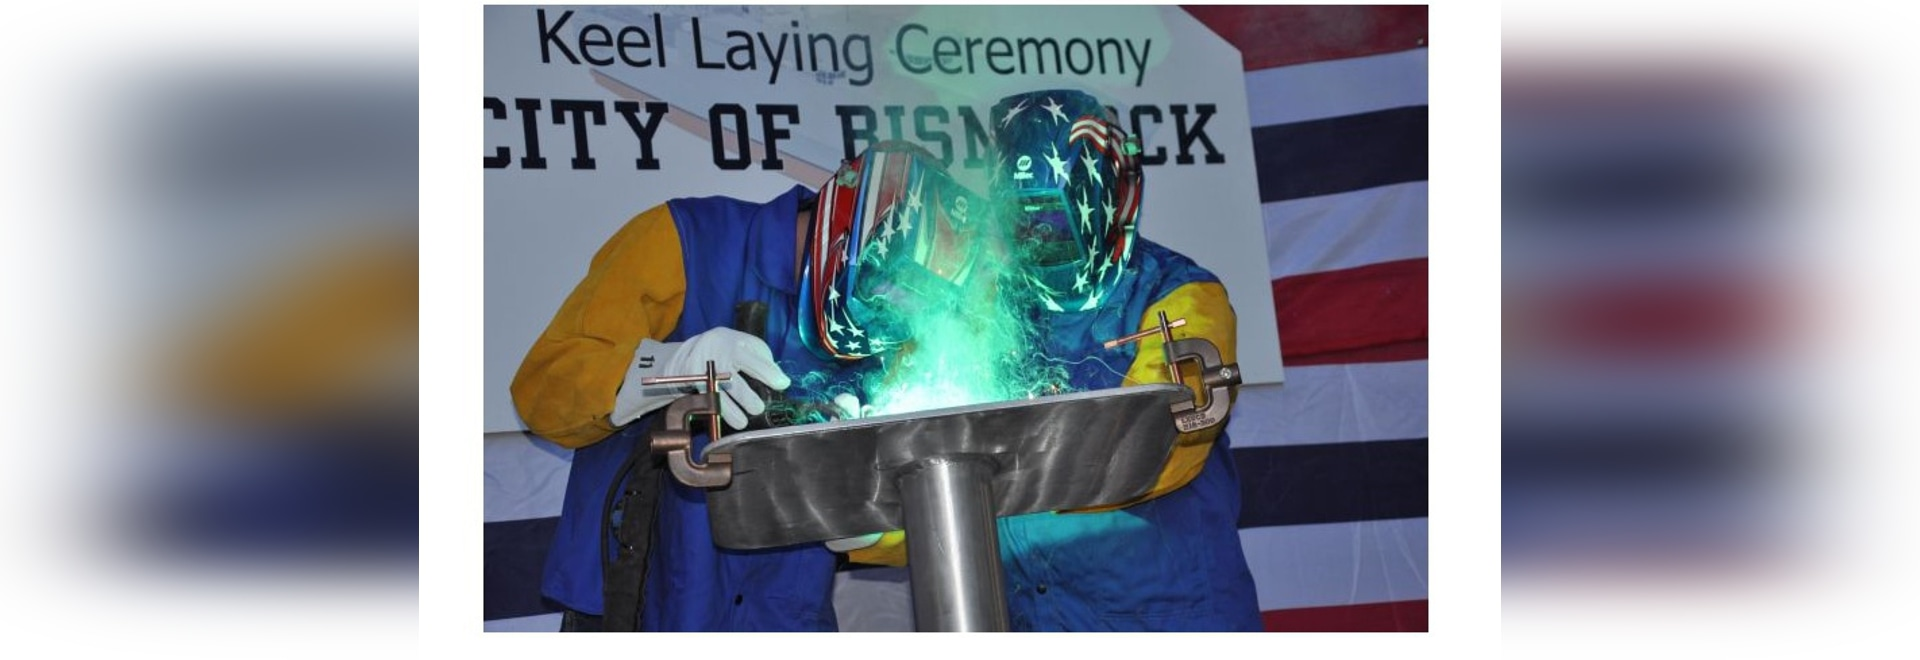 The Honorable Robert O. Wefald (right), former North Dakota State District Court Judge, welds his initials into the keel plate of the future USNS City of Bismarck (EPF 9) with the assistance of Aus...